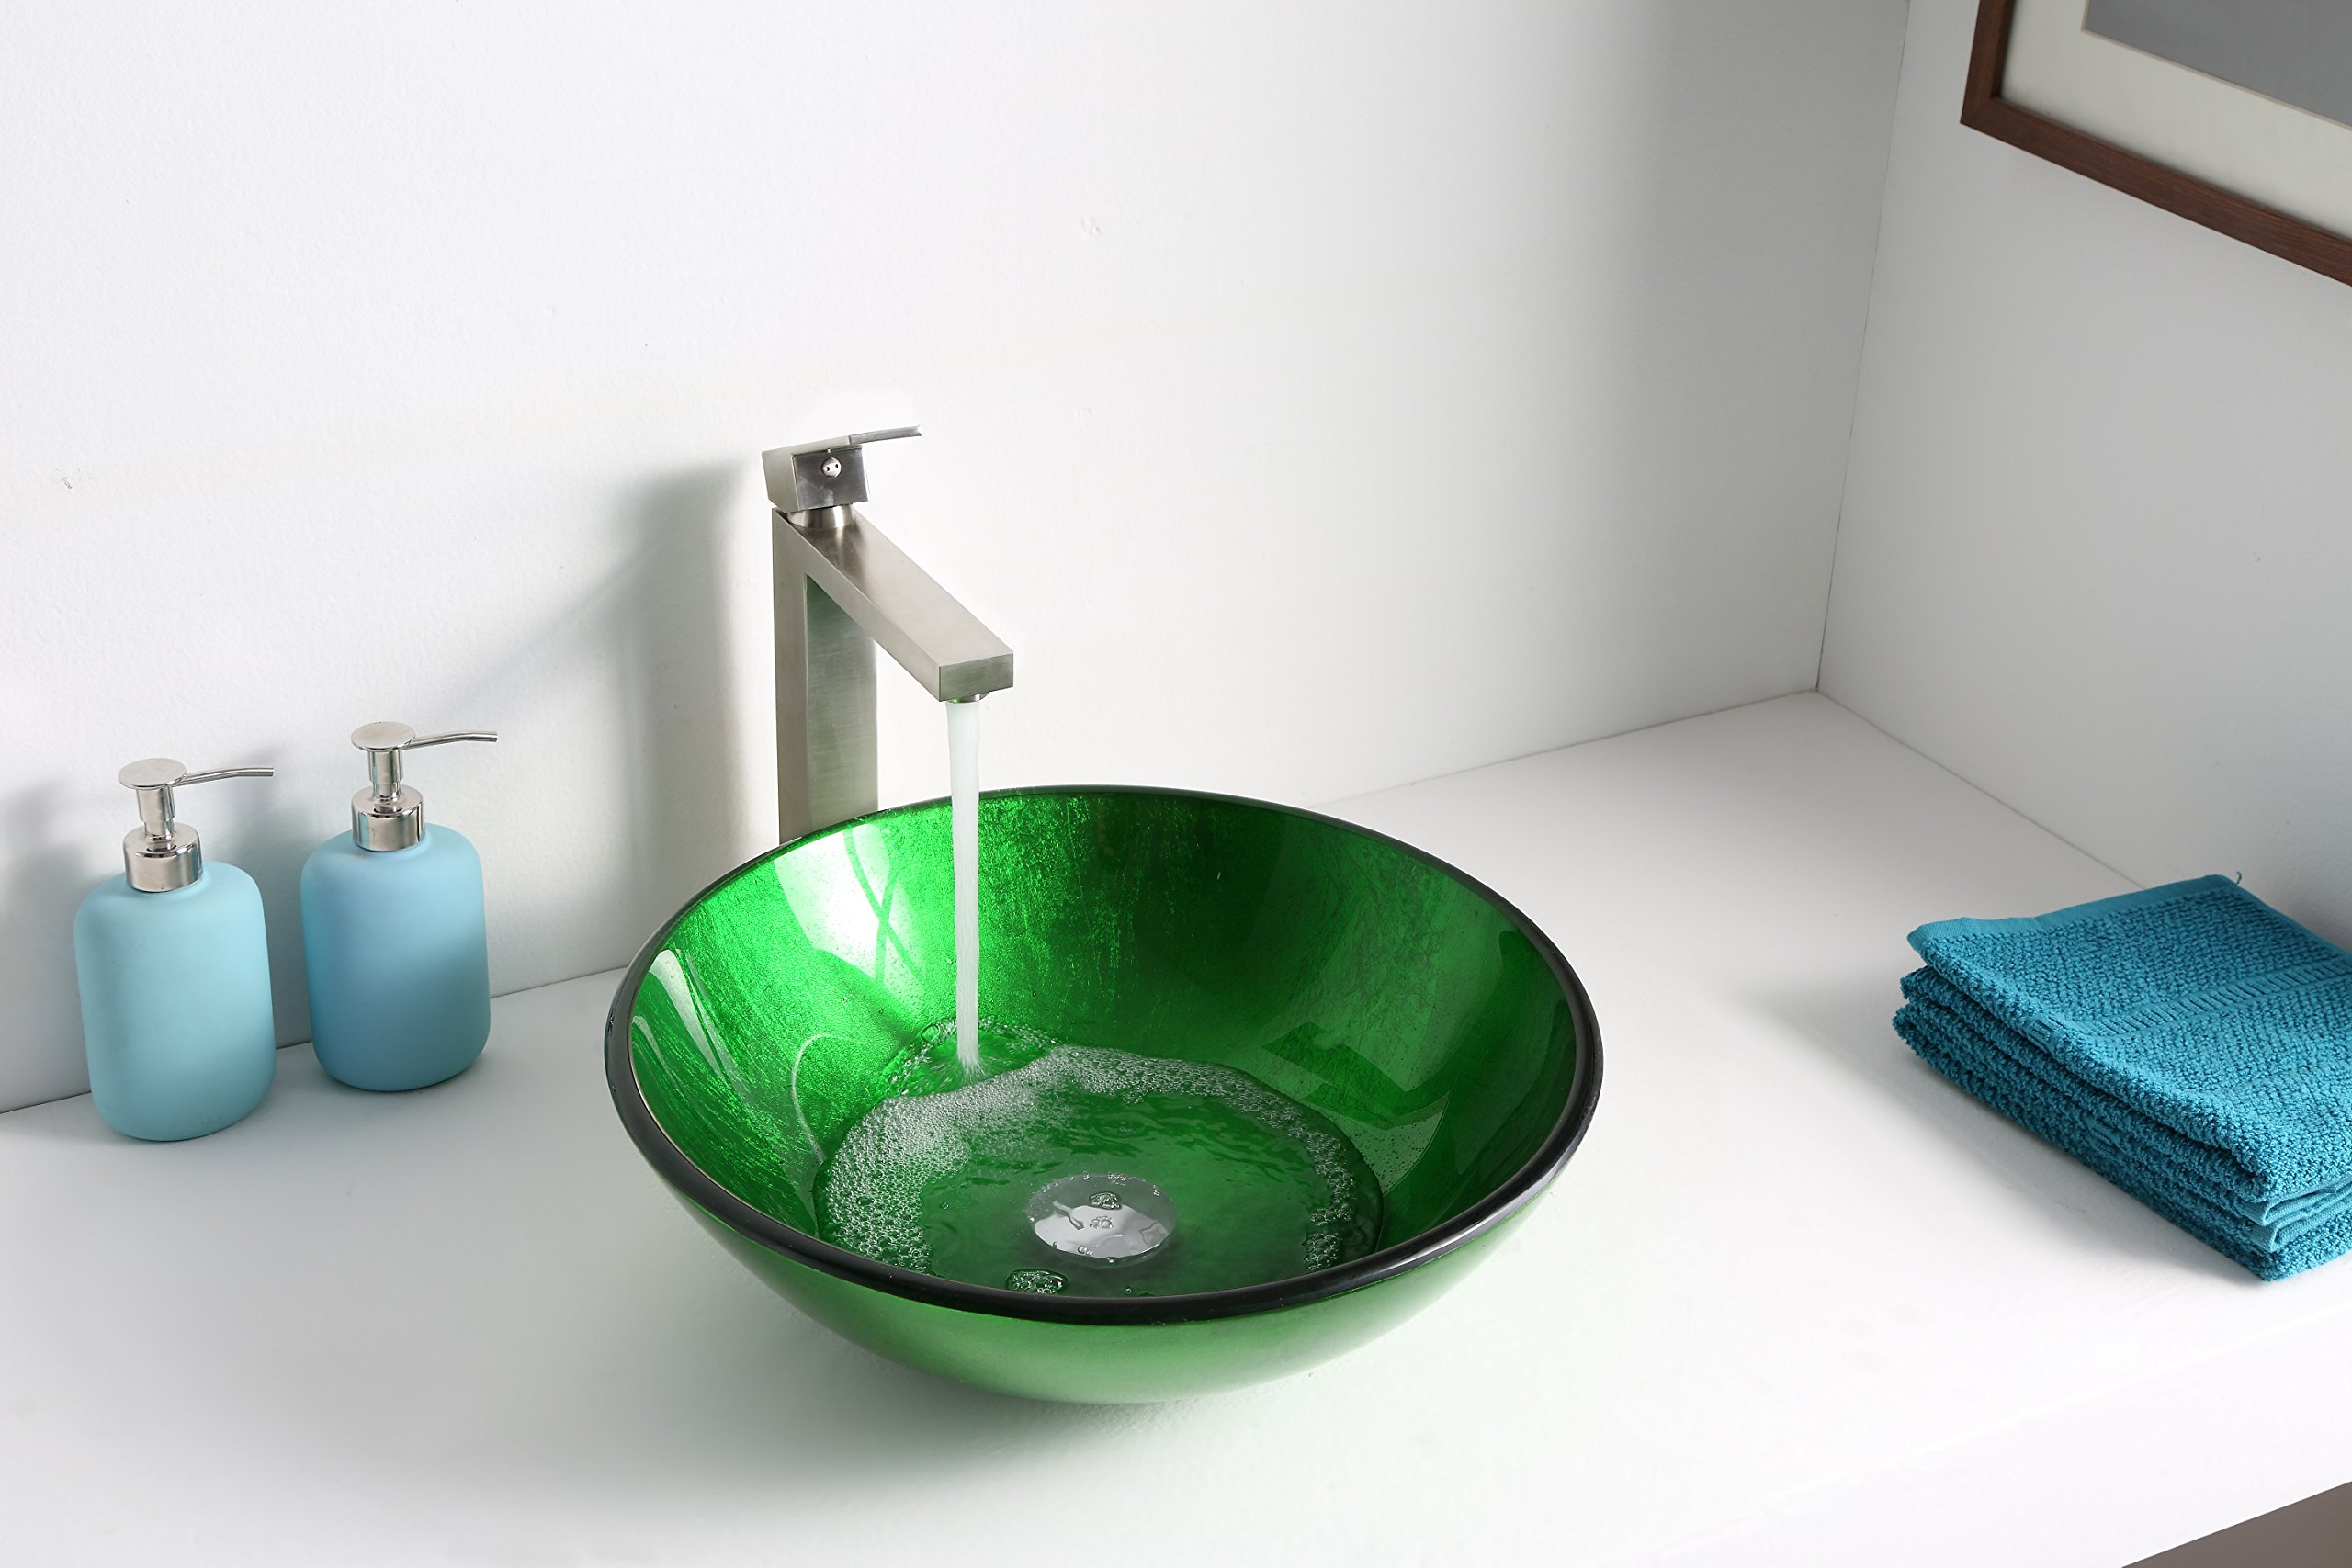 Tempered Glass Vessel Sink - Lustrous Green - Melody Series LS-AZ077 - ANZZI by ANZZI (Image #3)